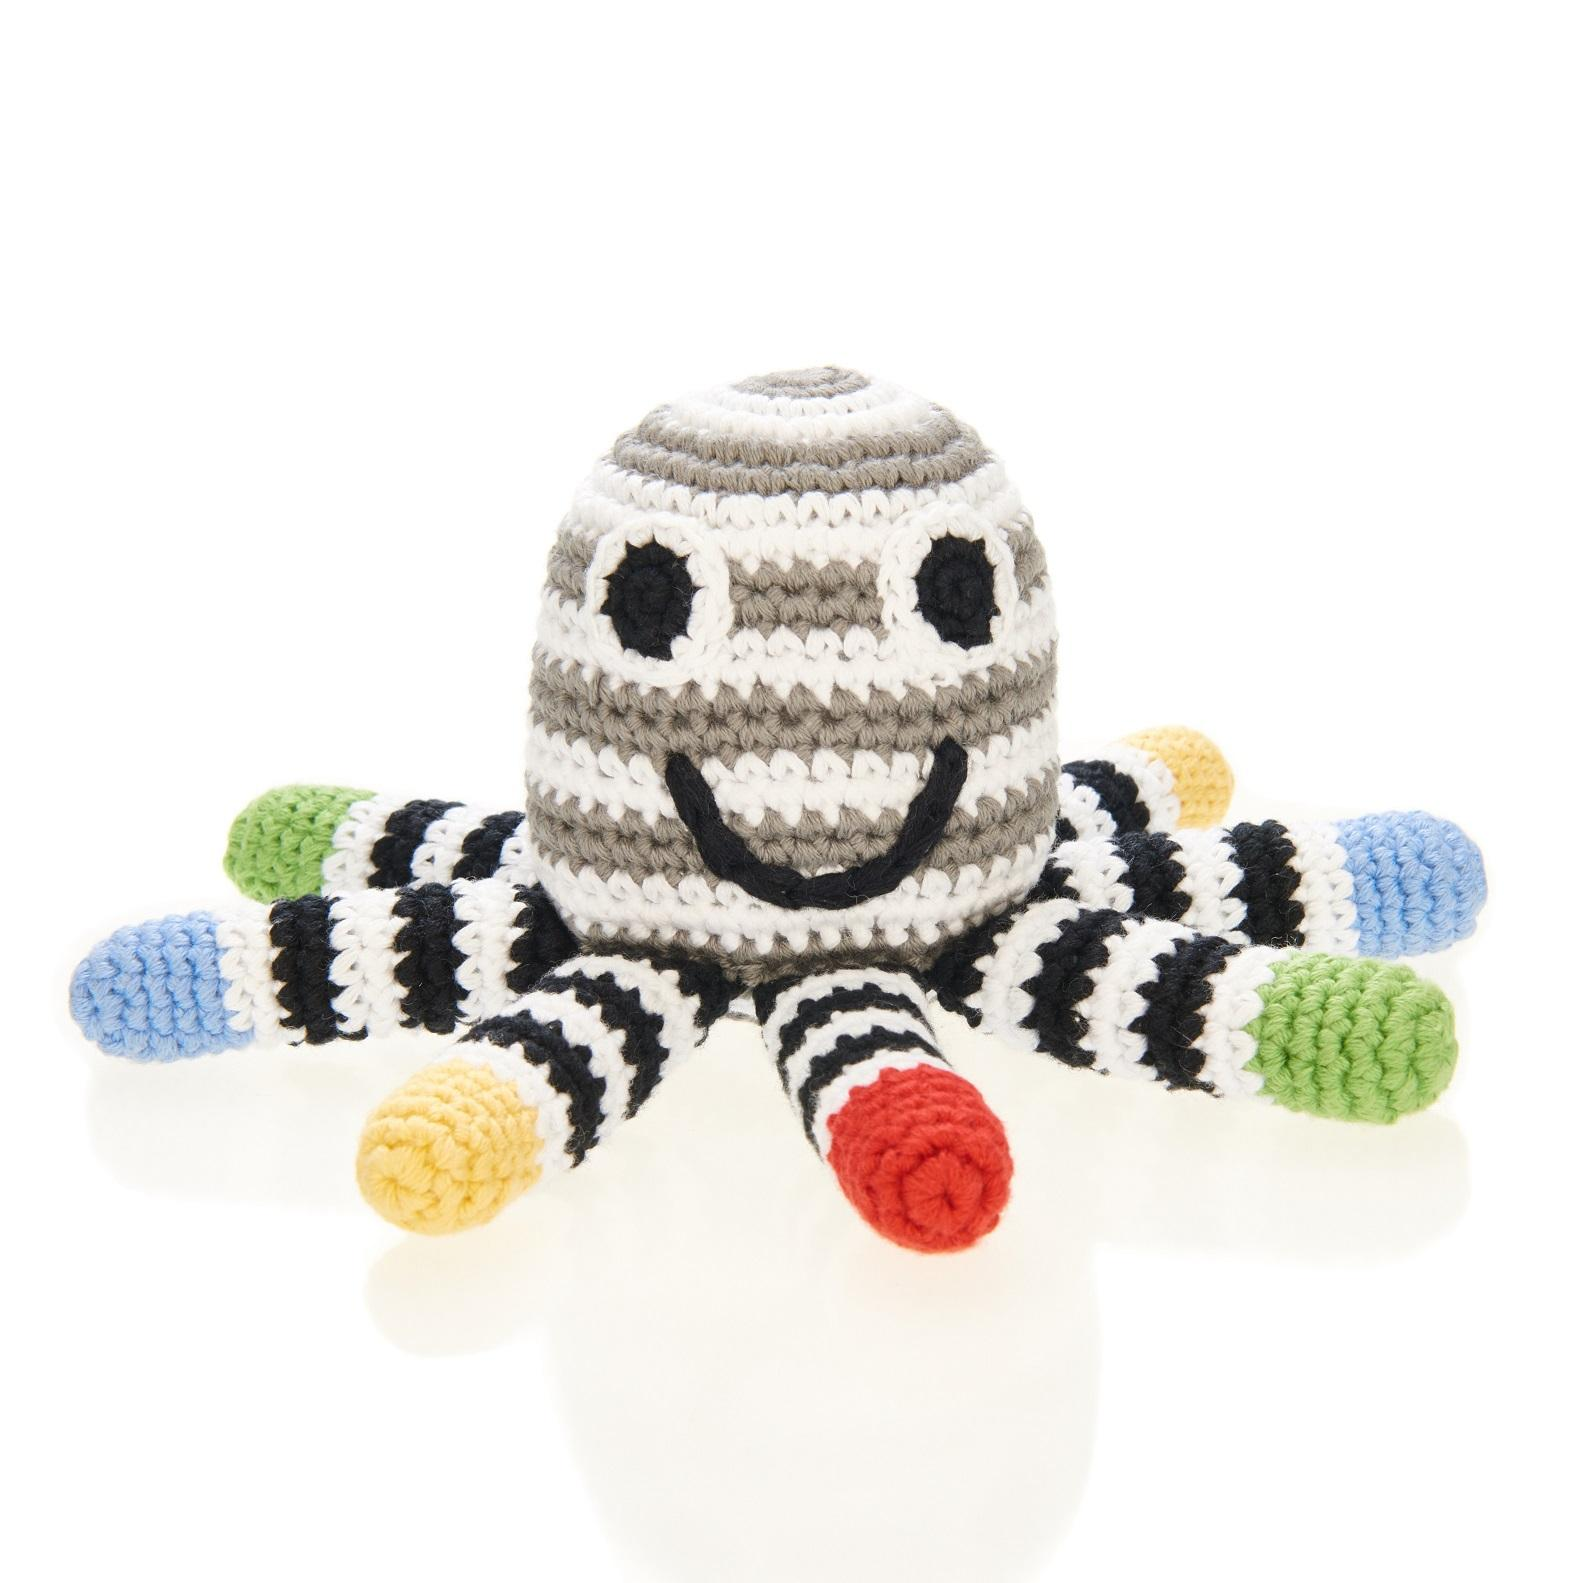 Crochet Cotton Black & White Octopus Baby Rattle